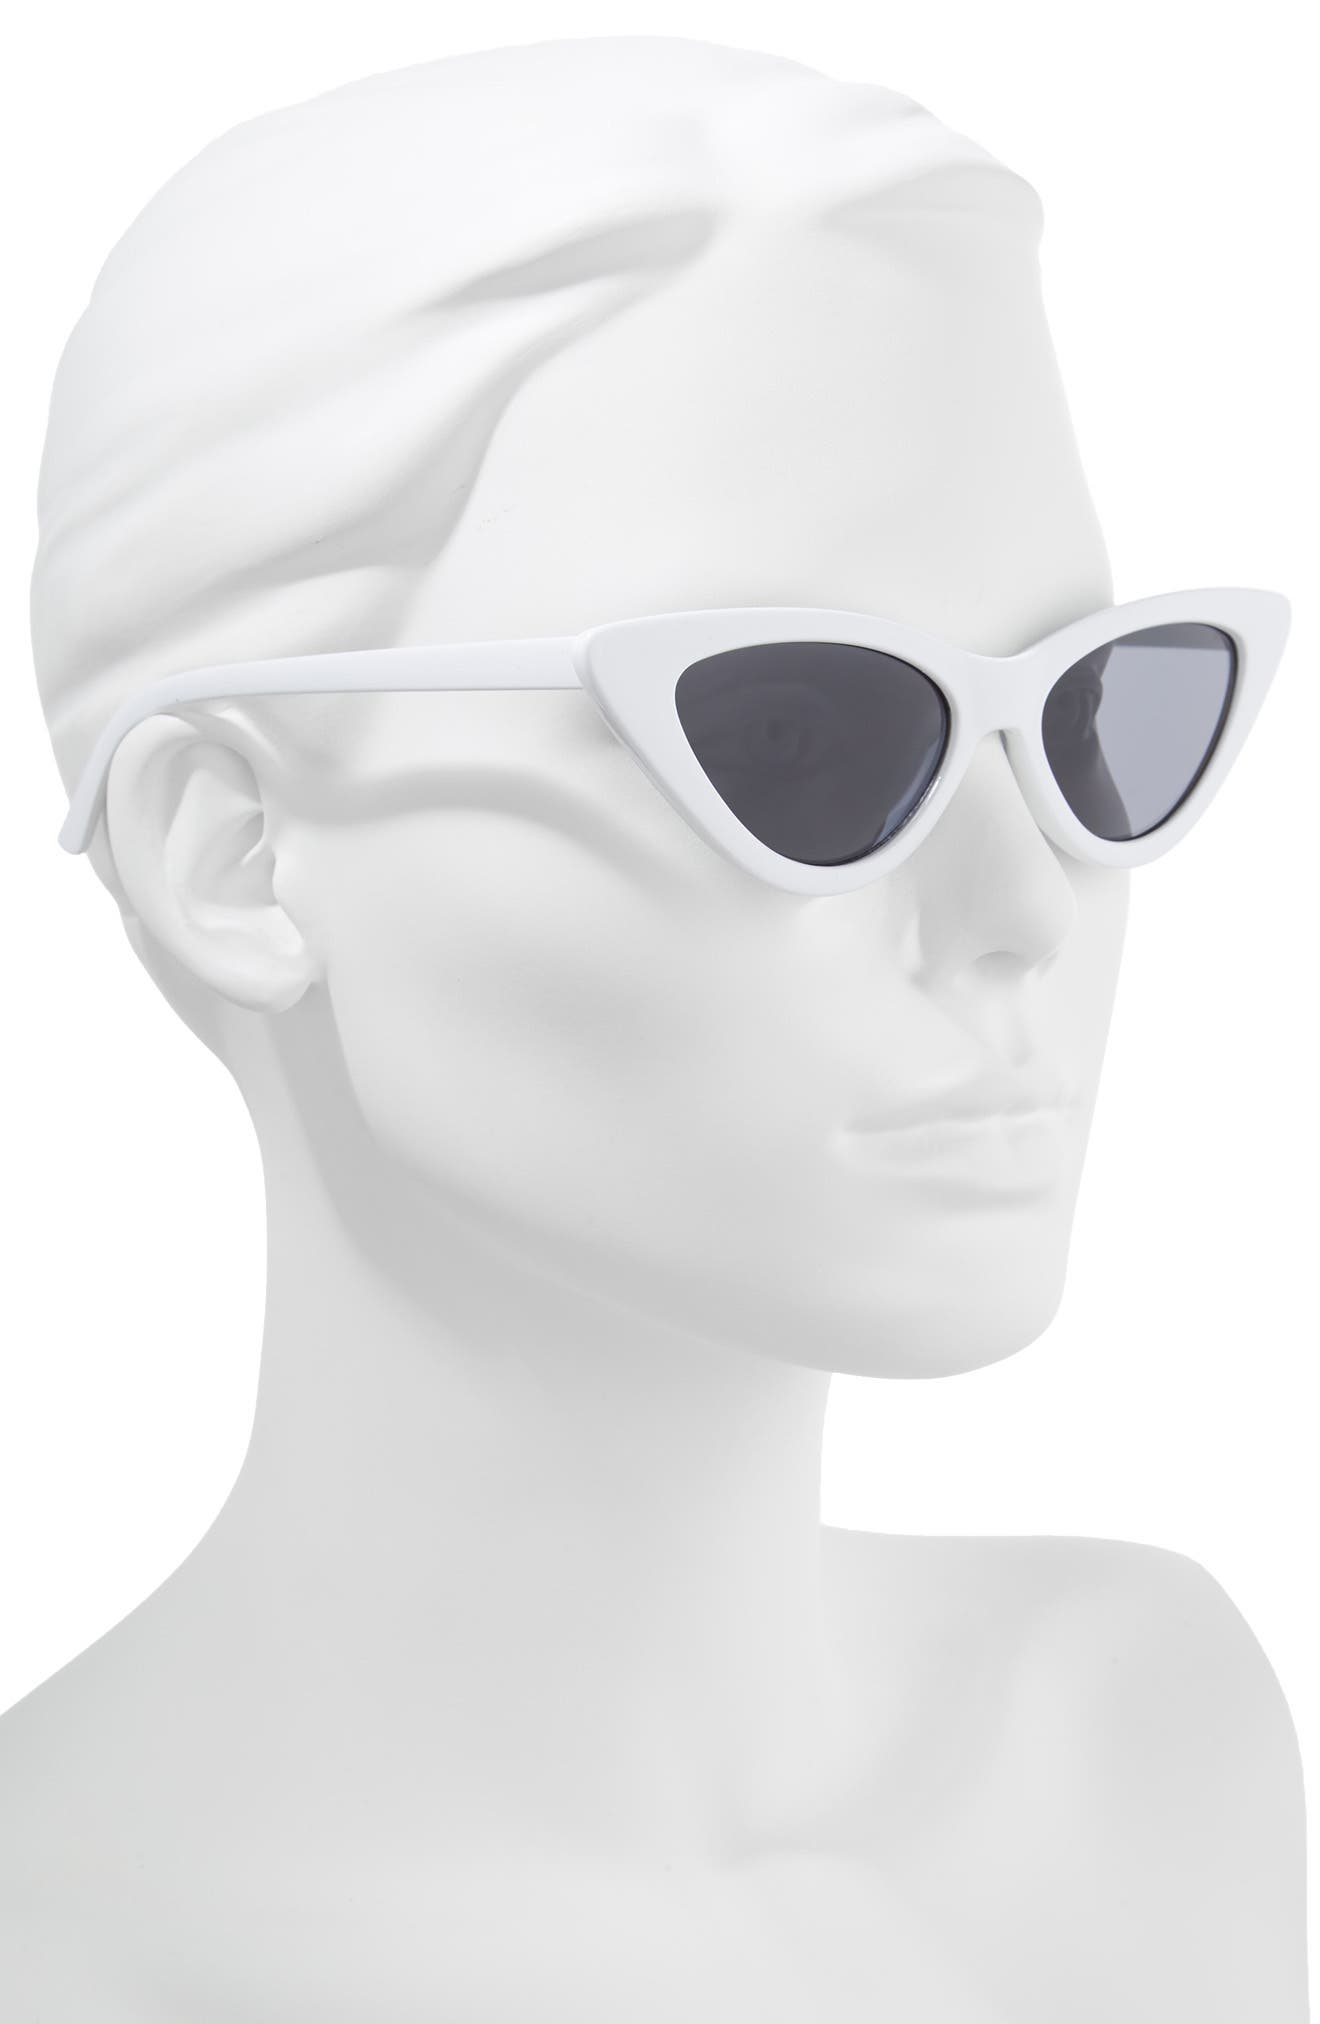 62mm Cat Eye Sunglasses,                             Alternate thumbnail 2, color,                             100